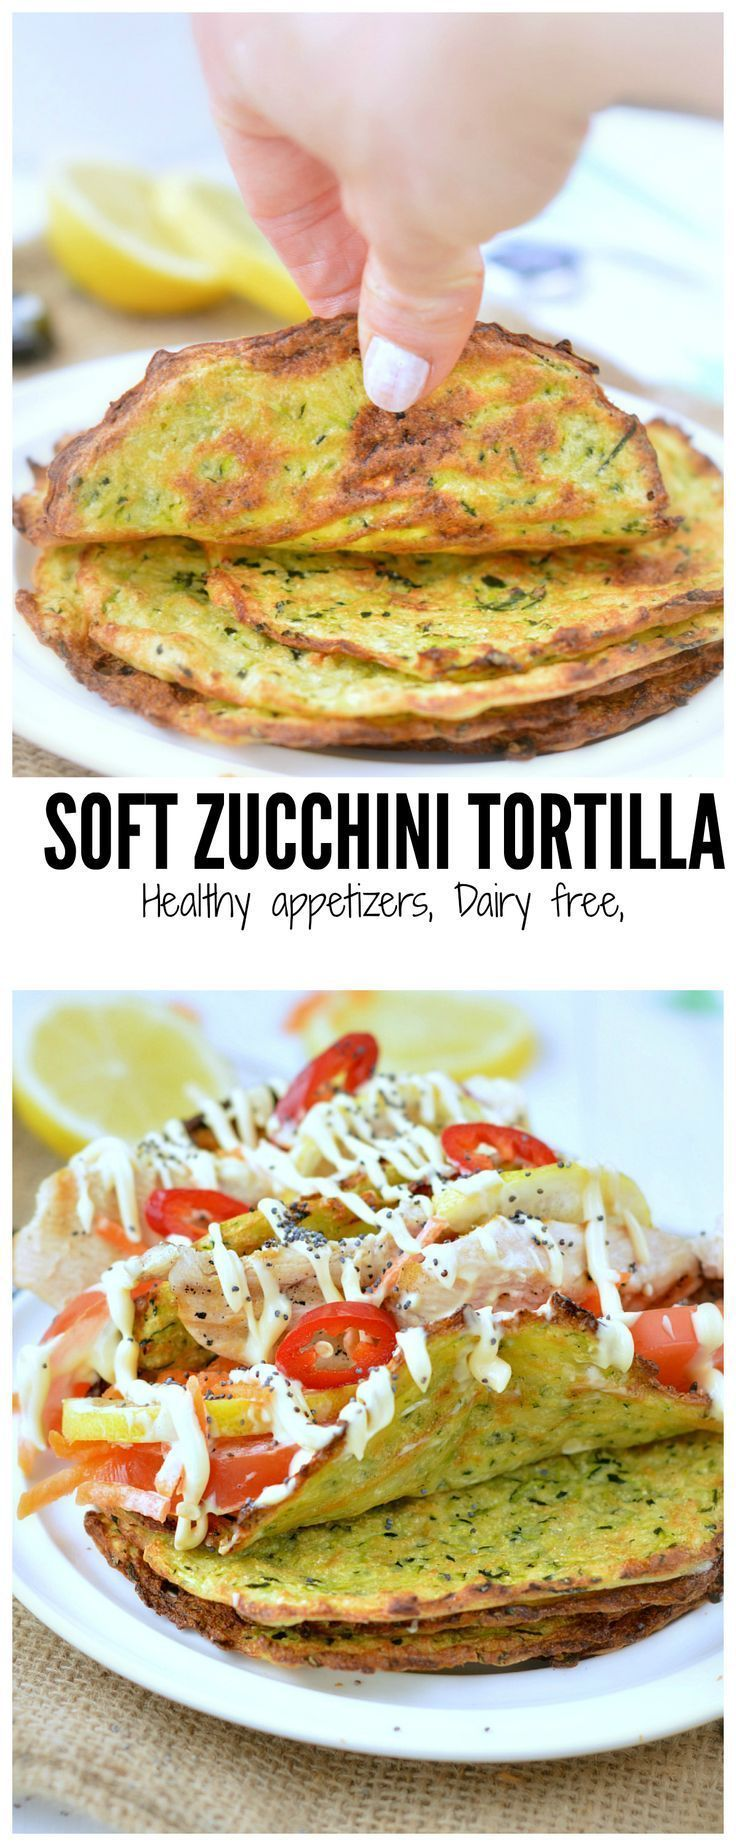 Clean eating tortilla recipes eating tortilla recipes    Healthy zucchini tortillas   Clean eating finger foods   Clean eating easy recipes